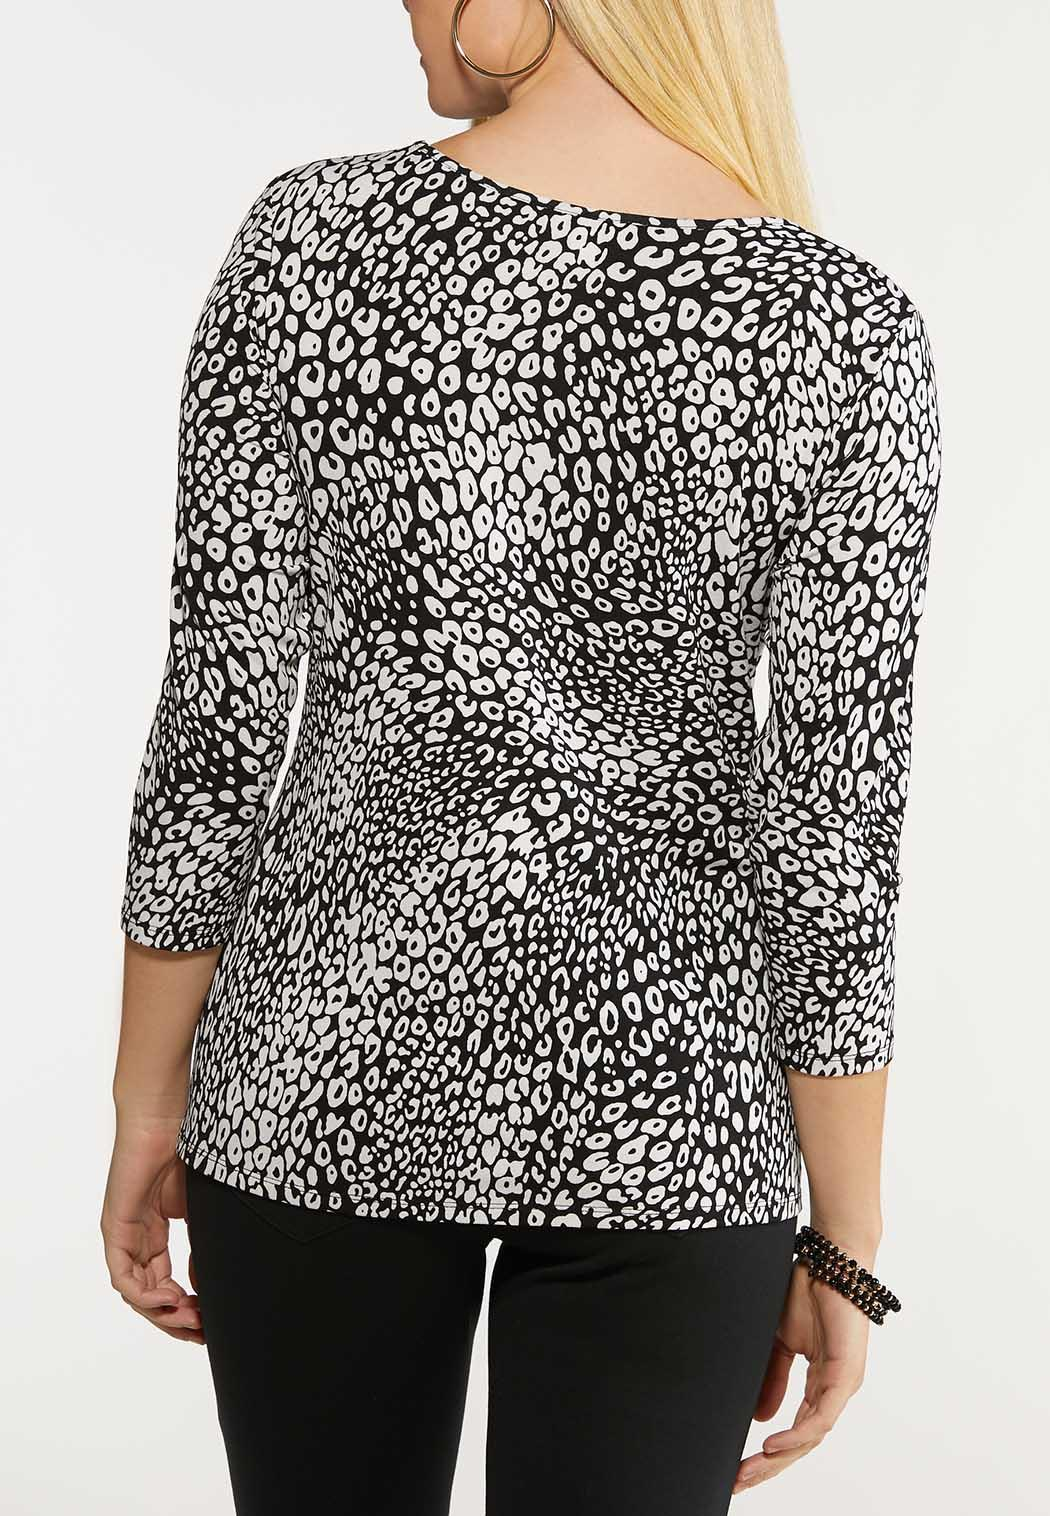 Black And White Leopard Top (Item #44124293)